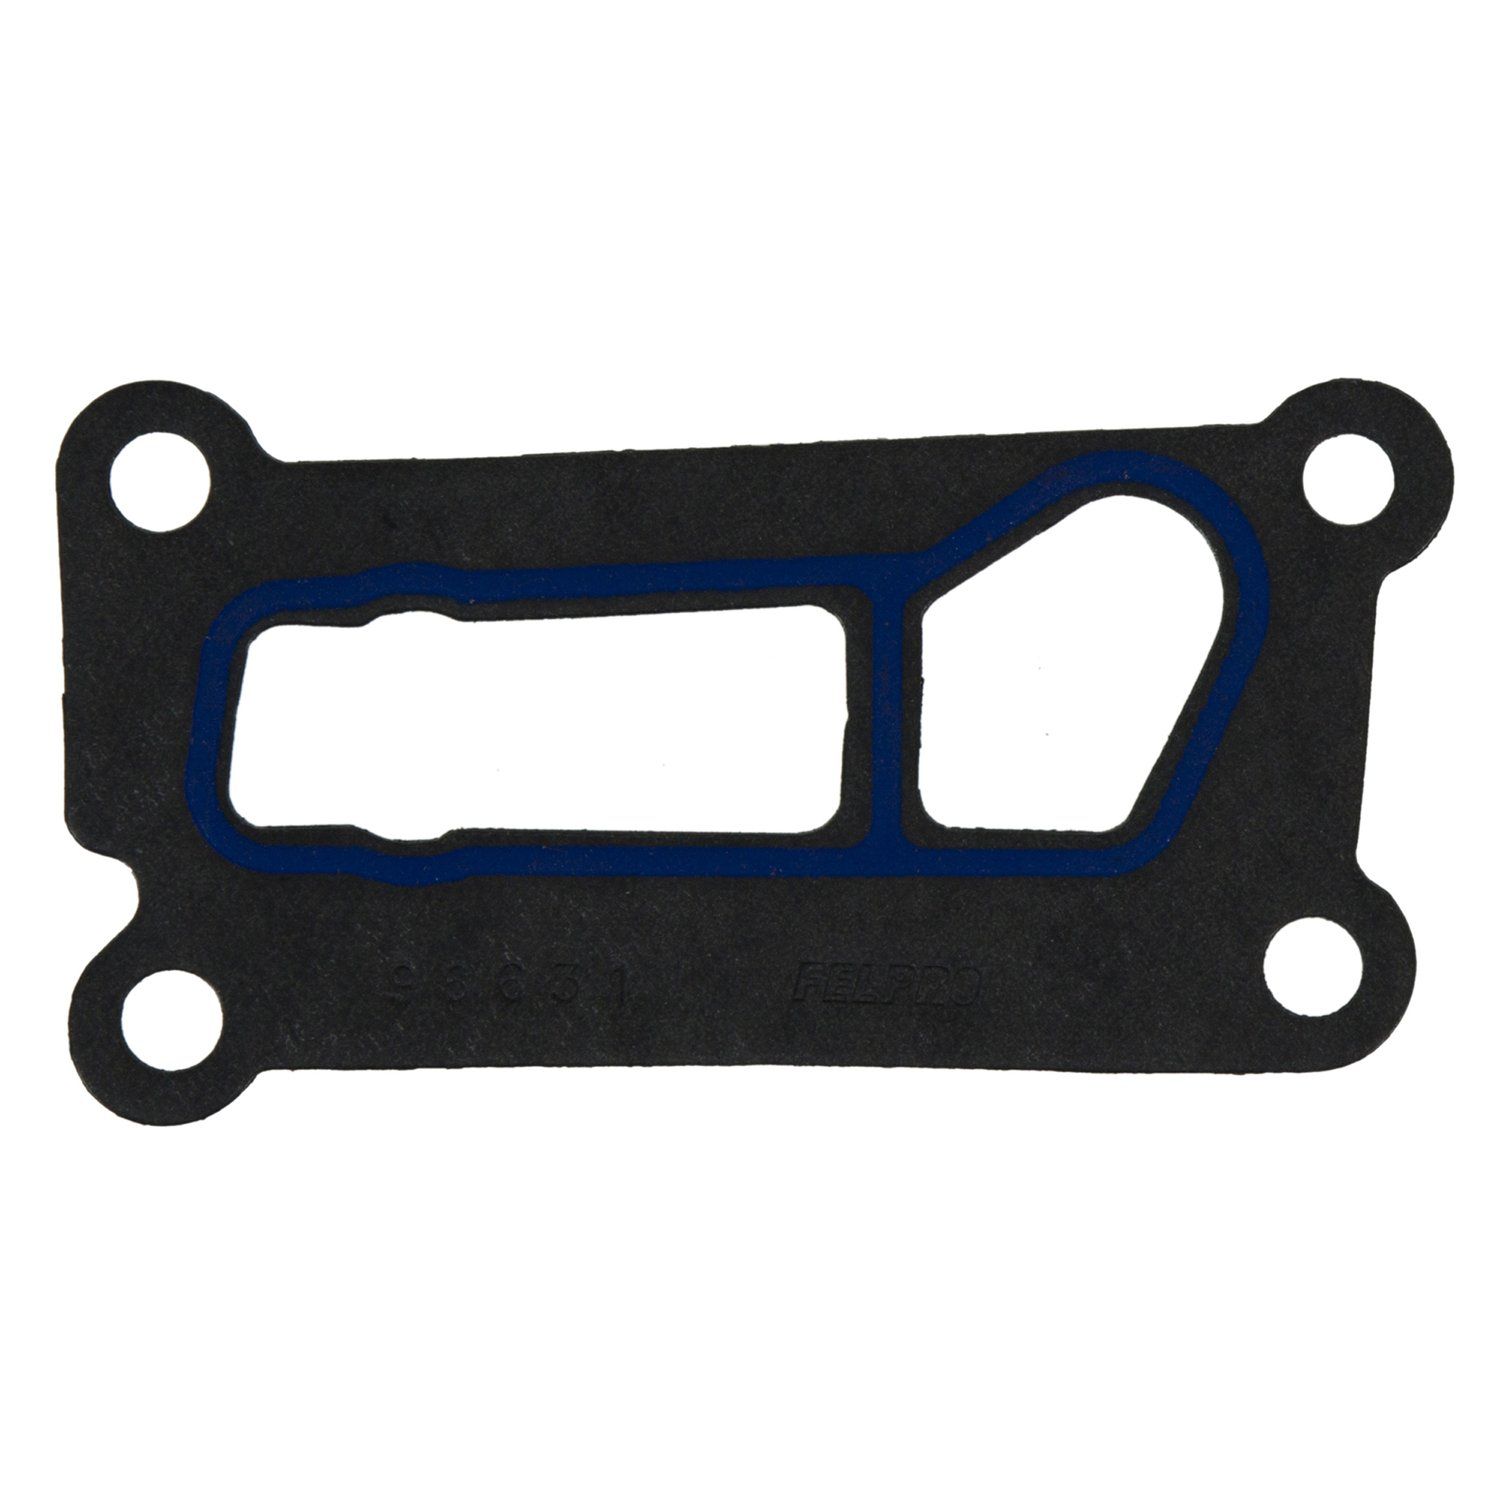 Fel-Pro 72949 Oil Filter Adaptor Gasket